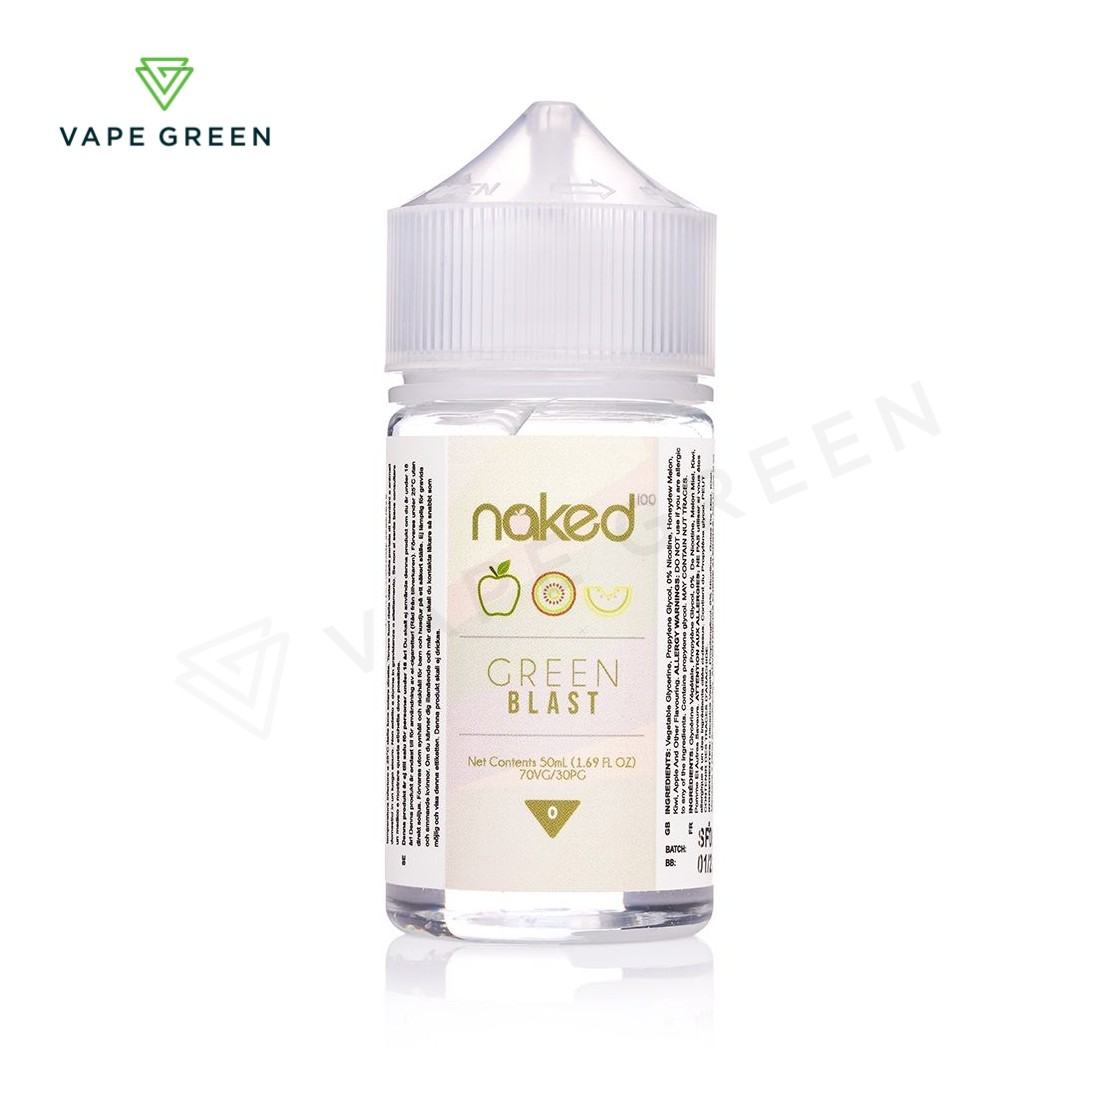 Green Blast E-liquid by Naked 100 - 50ml